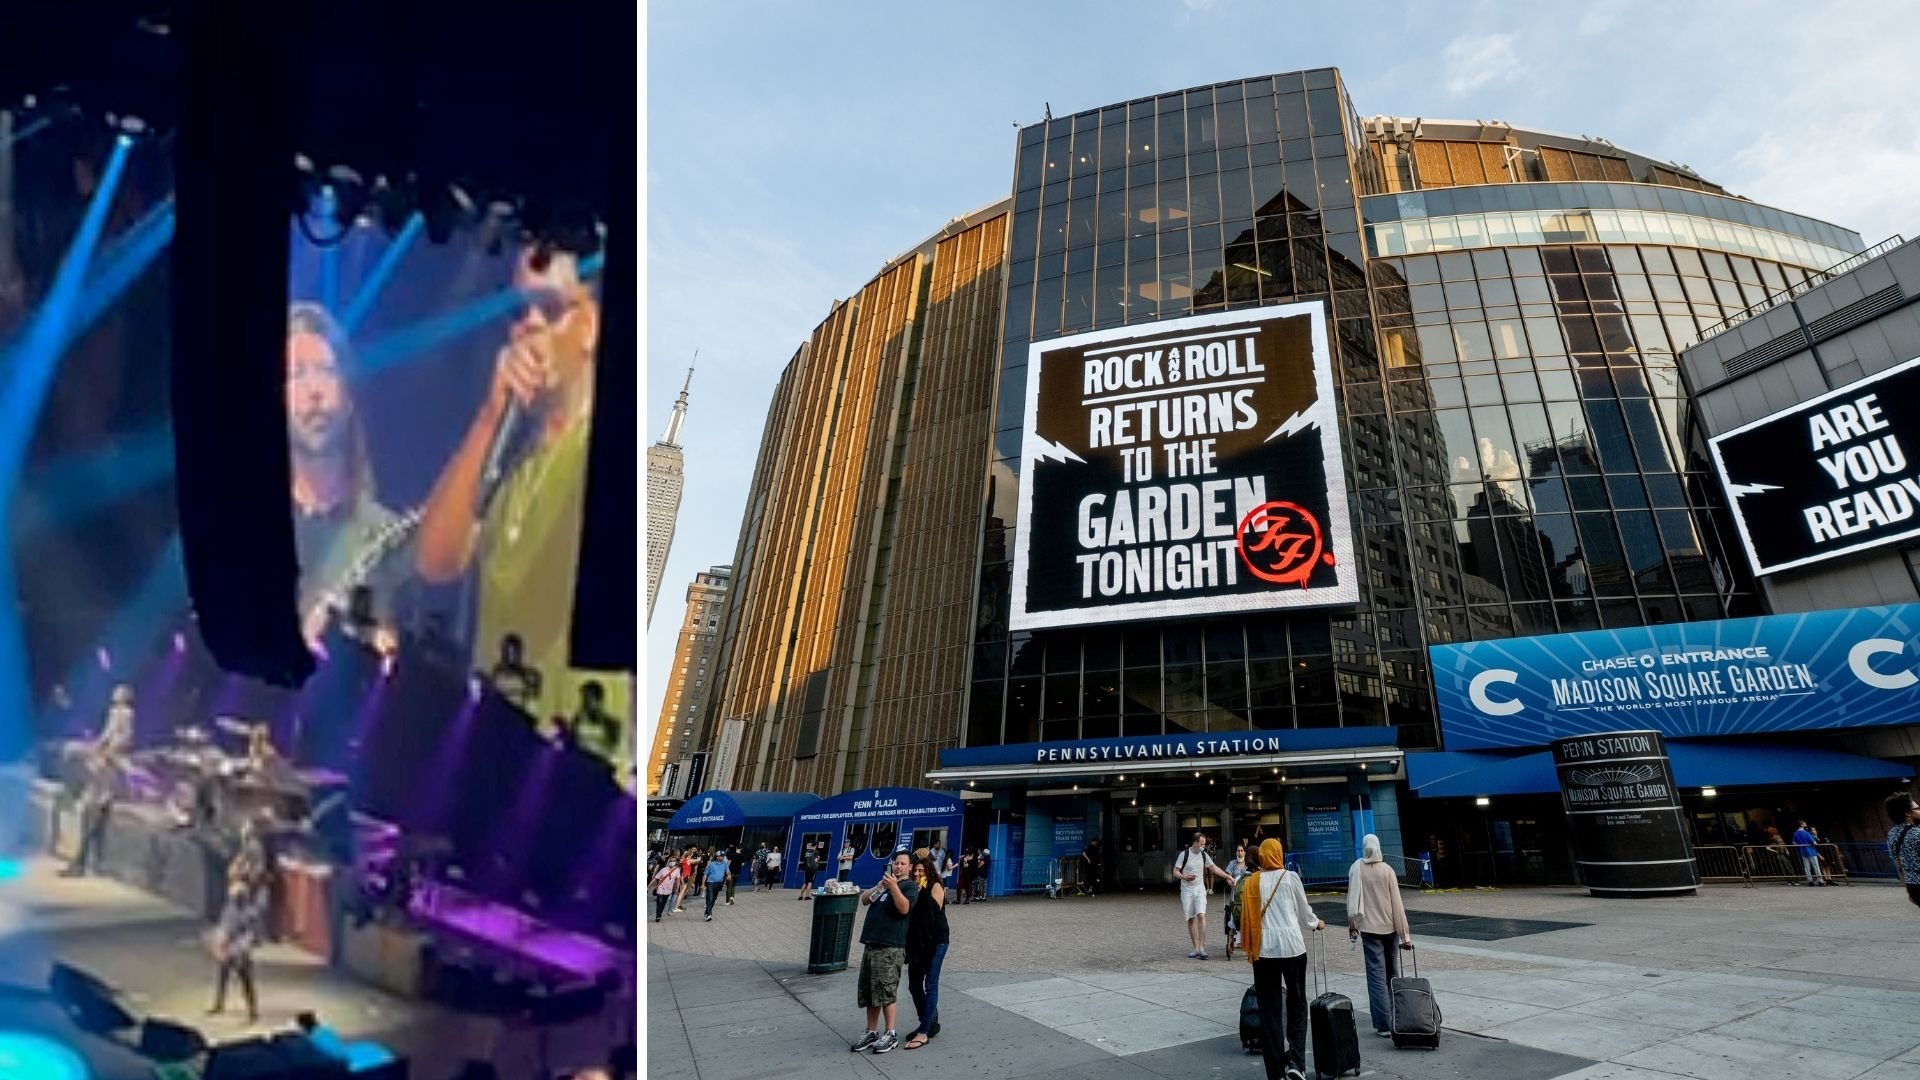 Dave Chappelle sings with Foo Fighters at Madison Square Garden